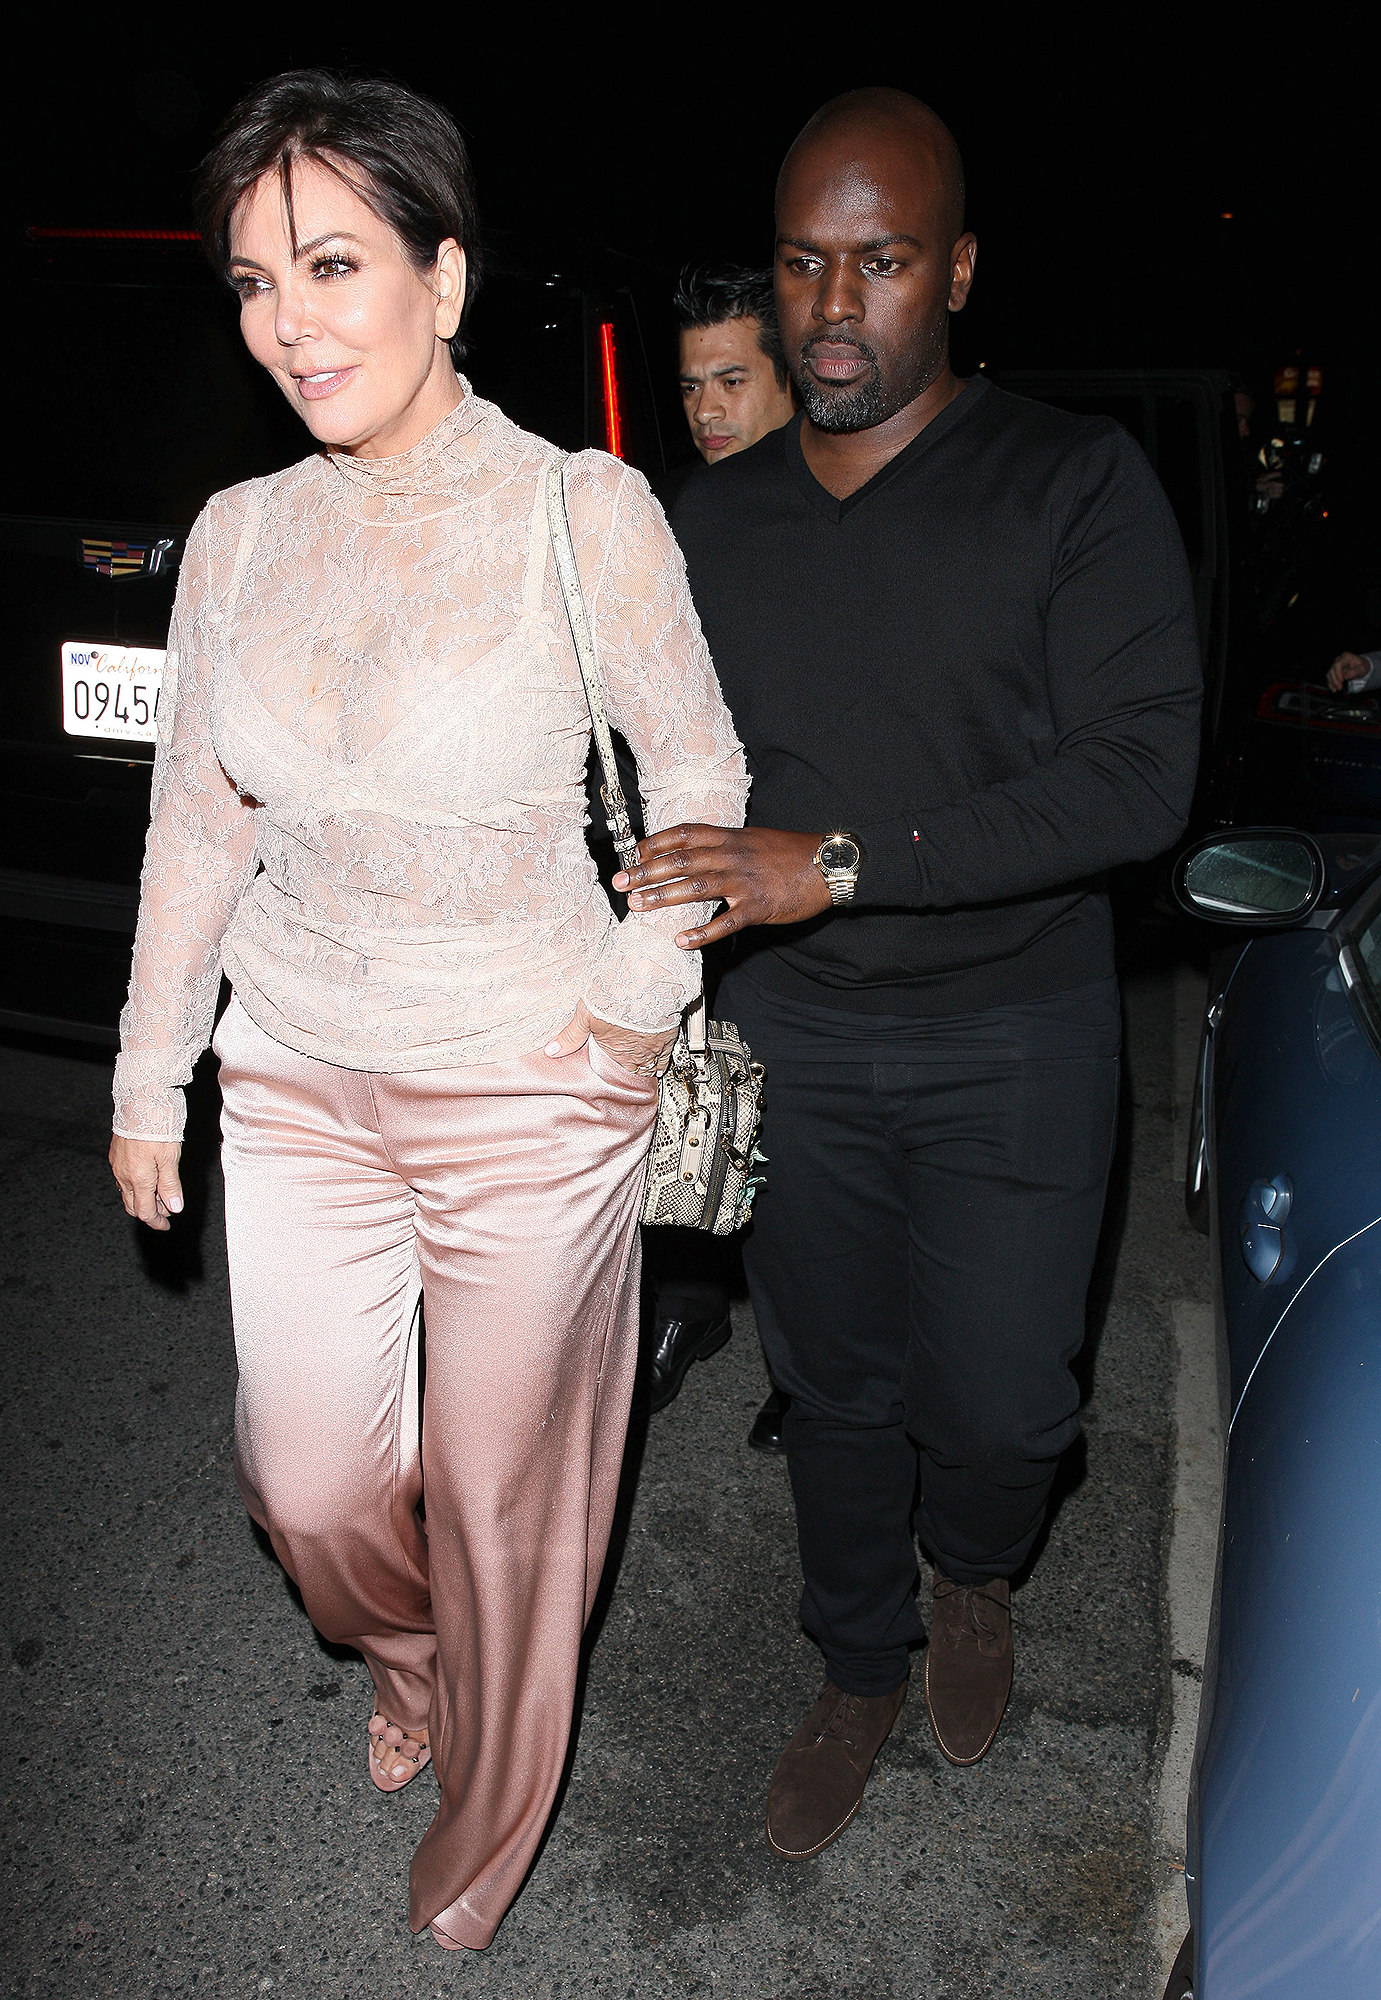 Kris Jenner and Corey Gamble grab dinner at Giorgio Baldi restaurant with fashion designer Tommy Hilfiger and his wife Dee Ocleppo